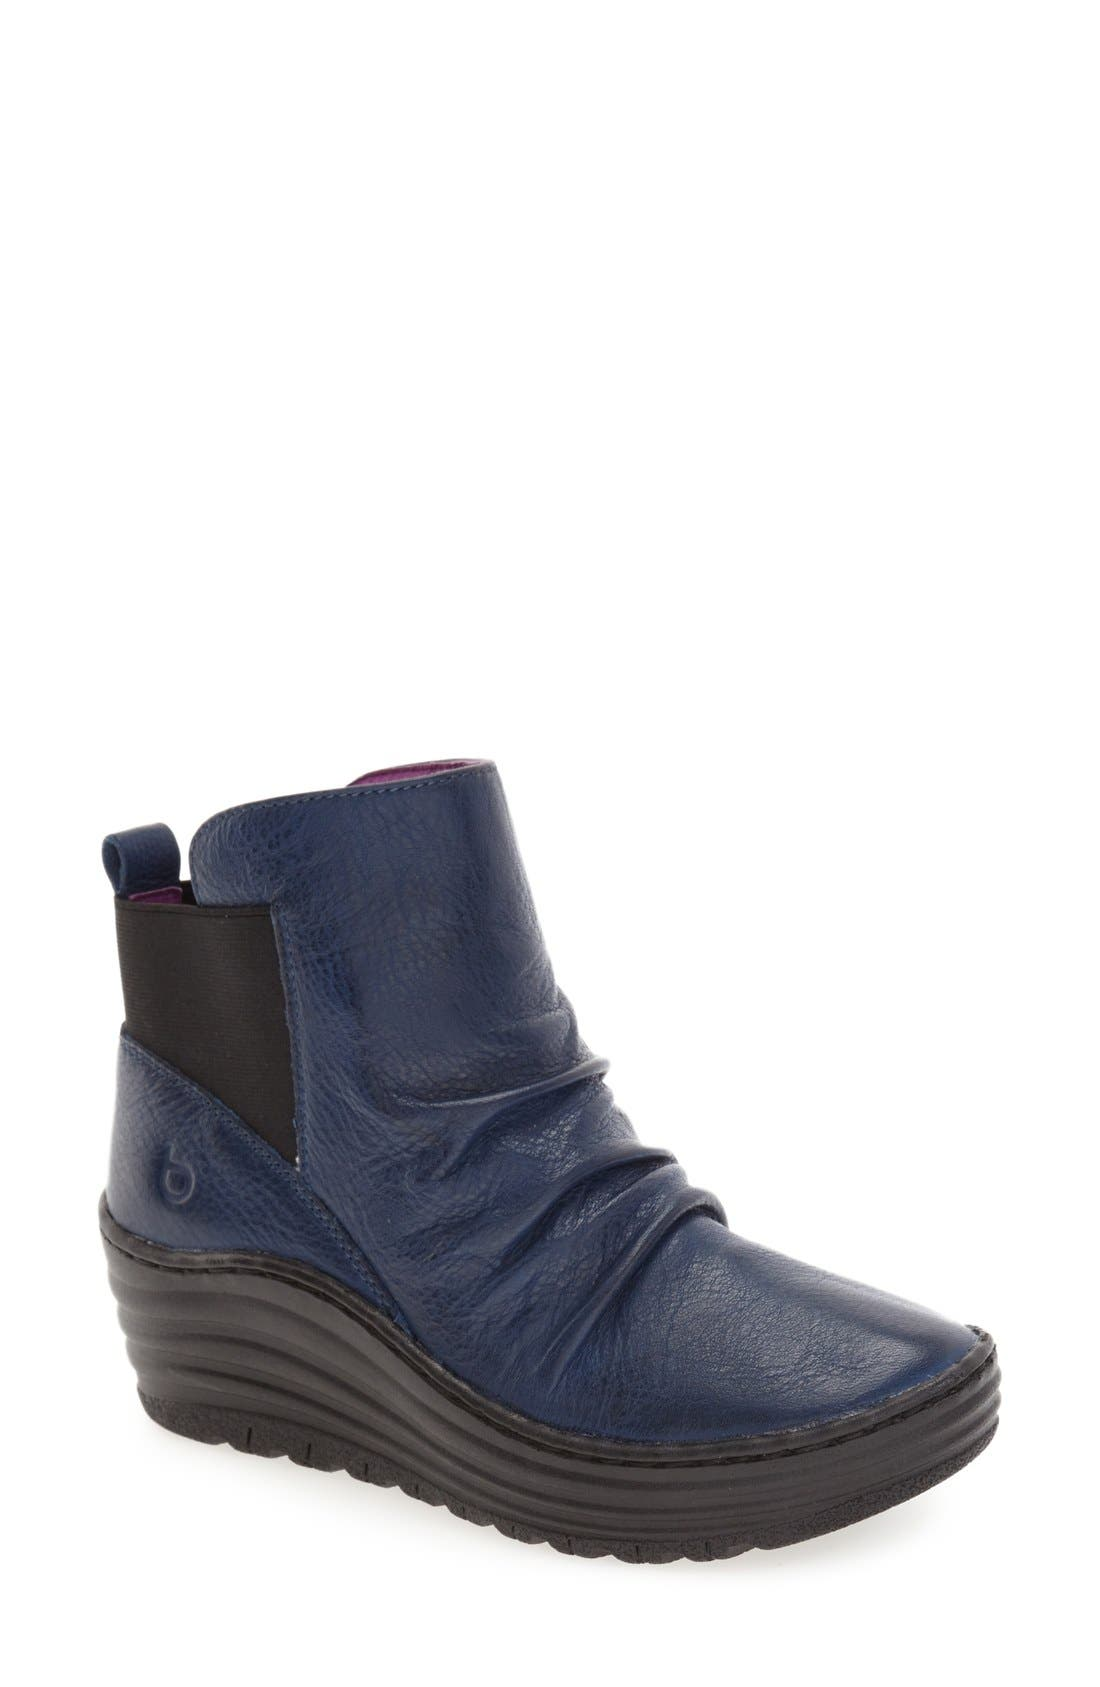 Alternate Image 1 Selected - bionica 'Gilford' Wedge Bootie (Women)